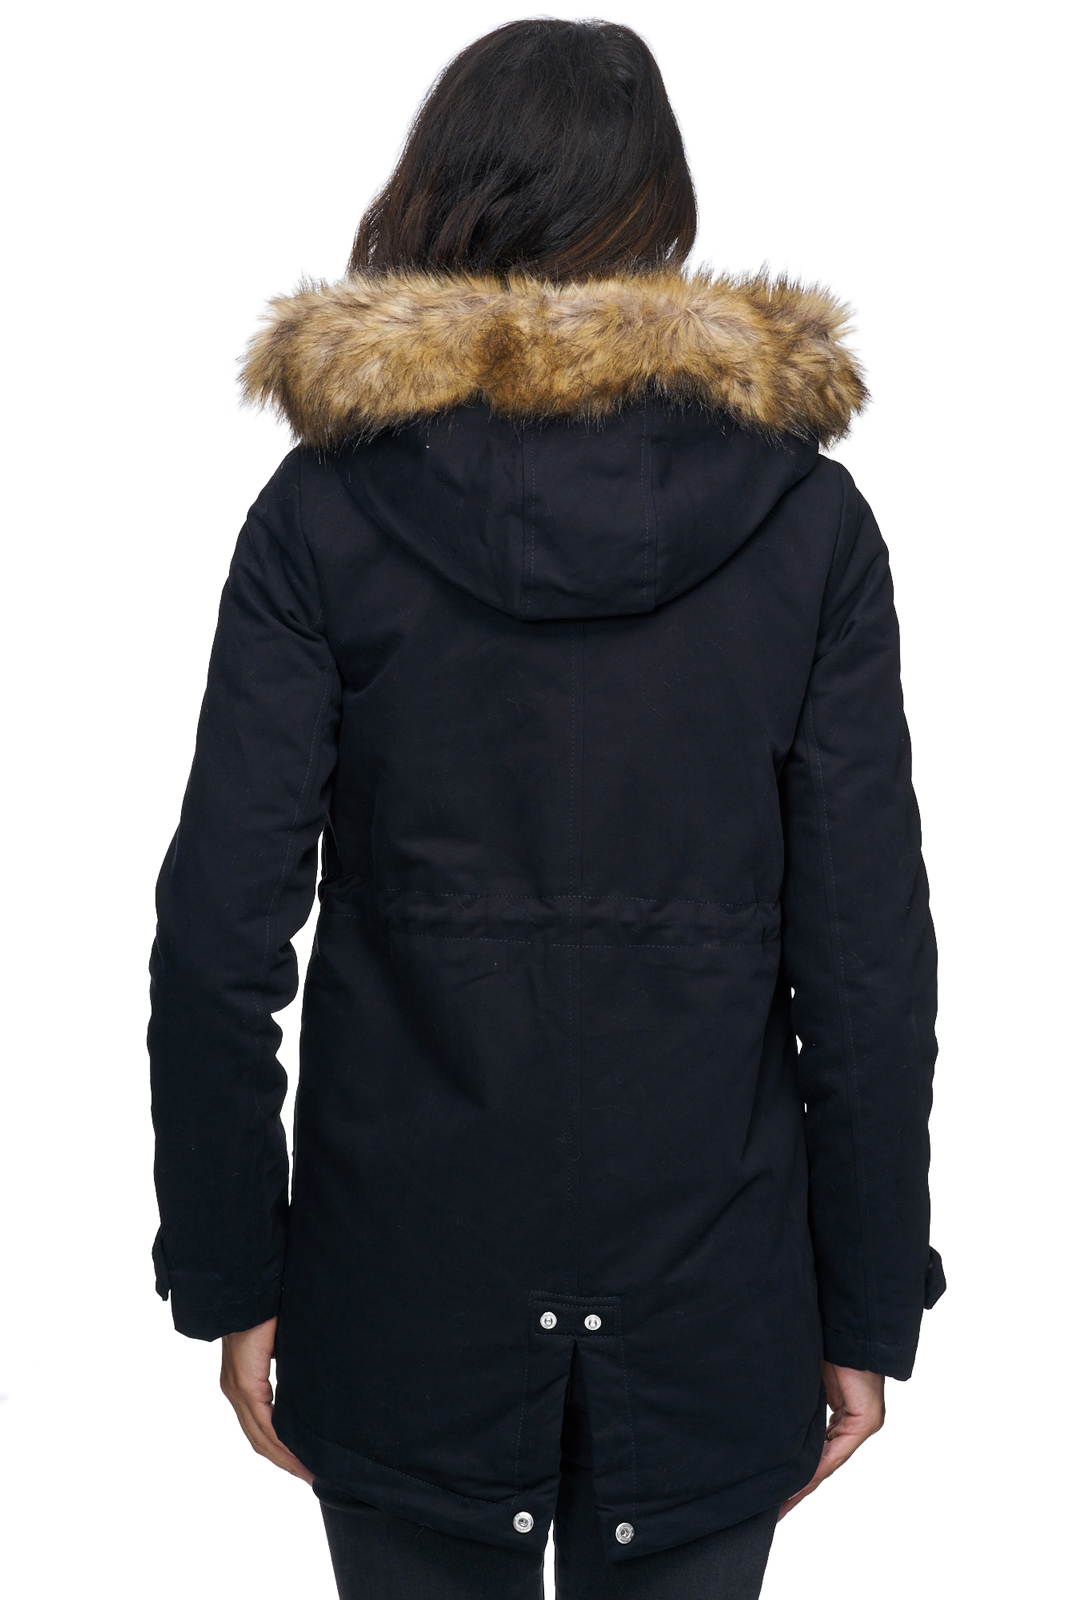 damen winter parka jacke mantel warm winterjacke fell schwarz khaki d 236 neu ebay. Black Bedroom Furniture Sets. Home Design Ideas